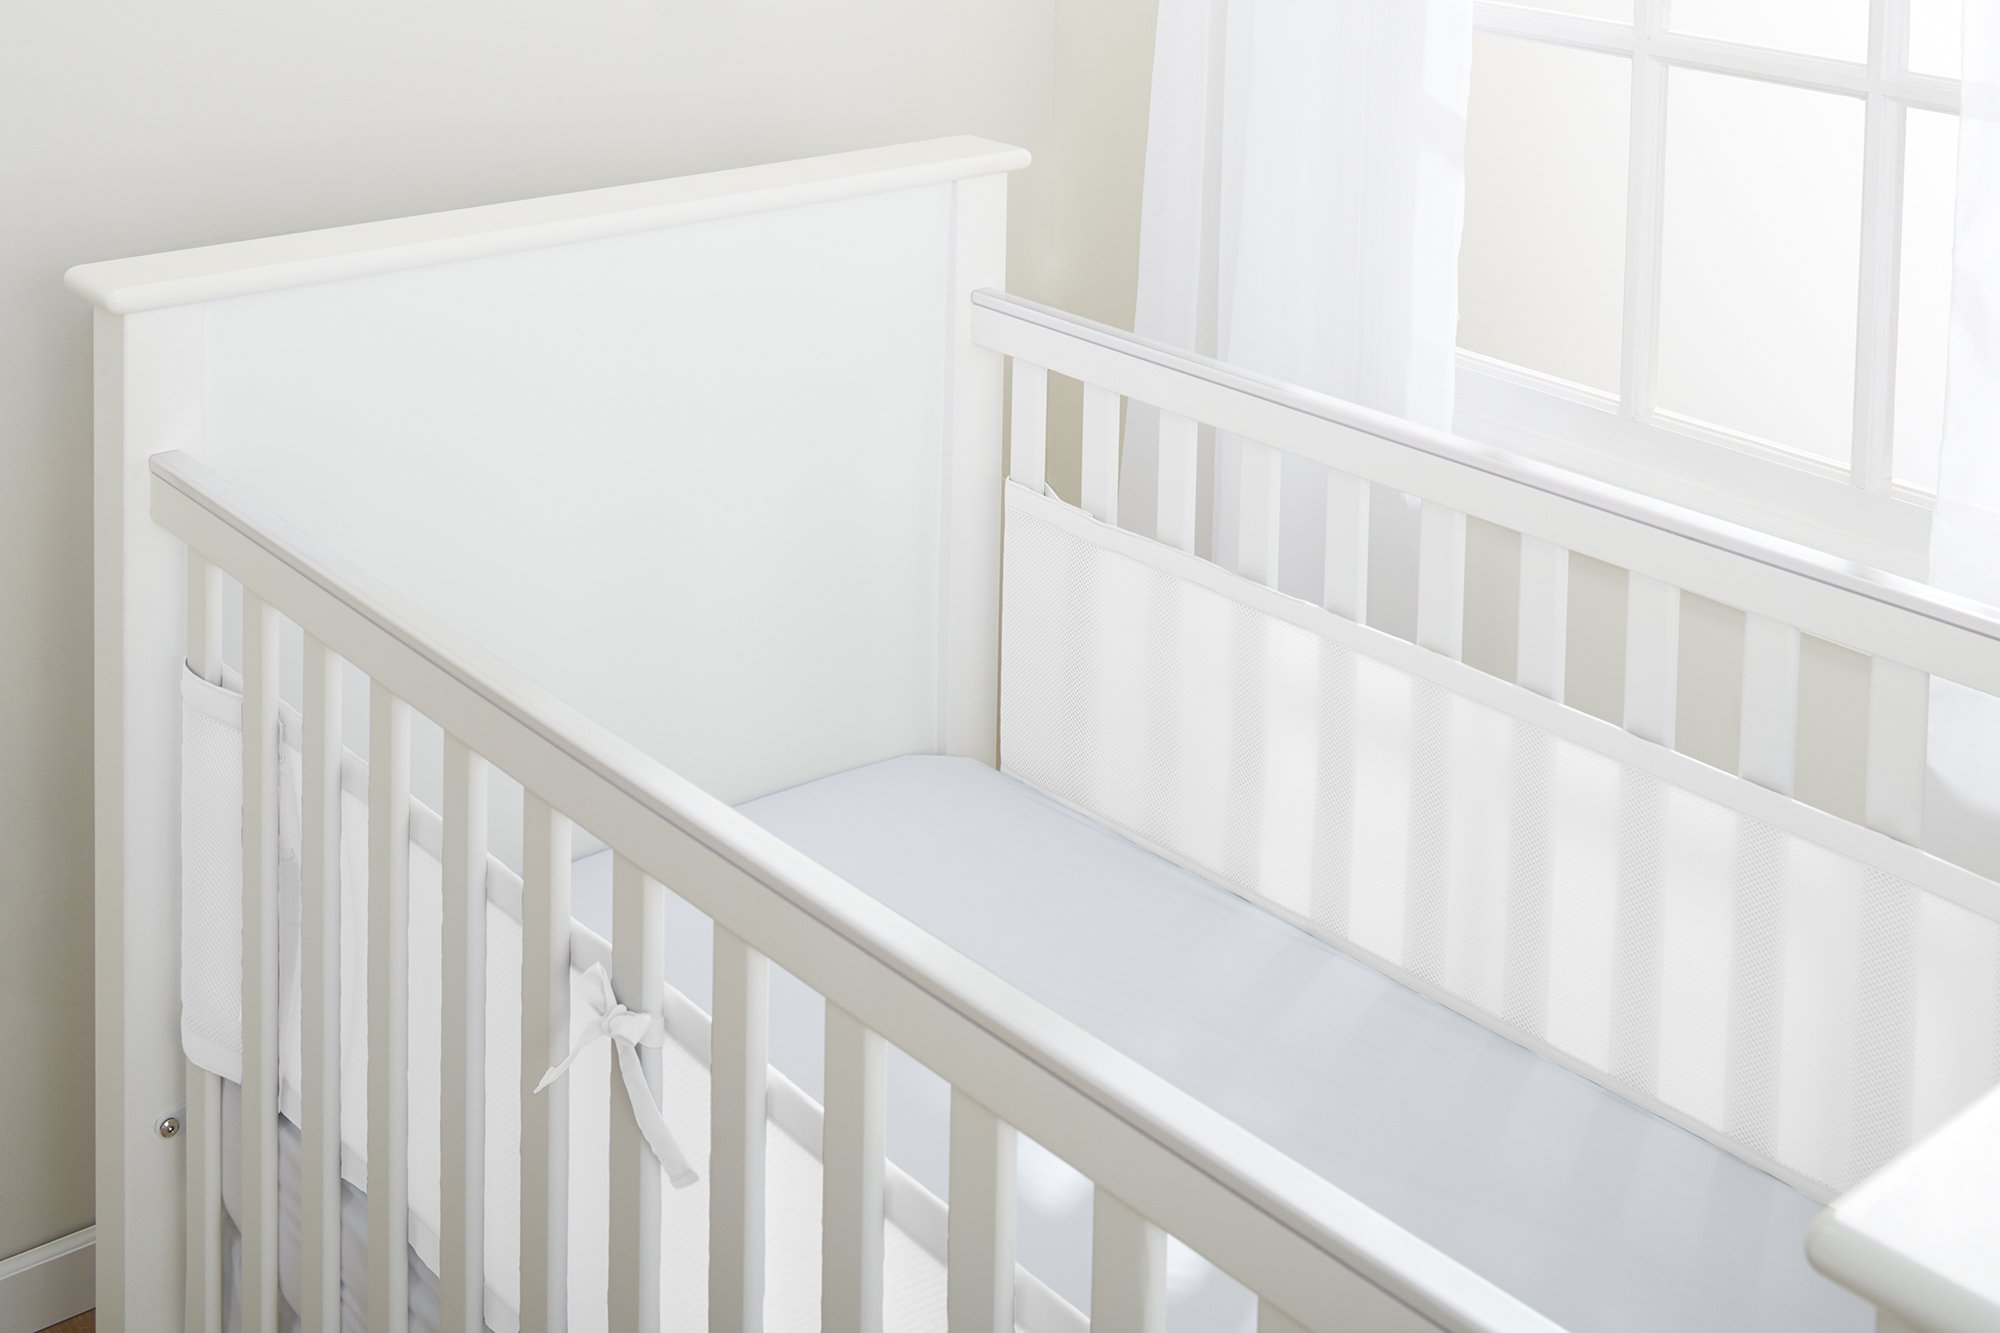 BreathableBaby 2 Sided Cot Mesh Liner (White Mist) BreathableBaby Suitable for solid end slatted cots Reduces the risk of suffocation with its breathable mesh material Design is soft and padded keeping little limbs safely inside 3